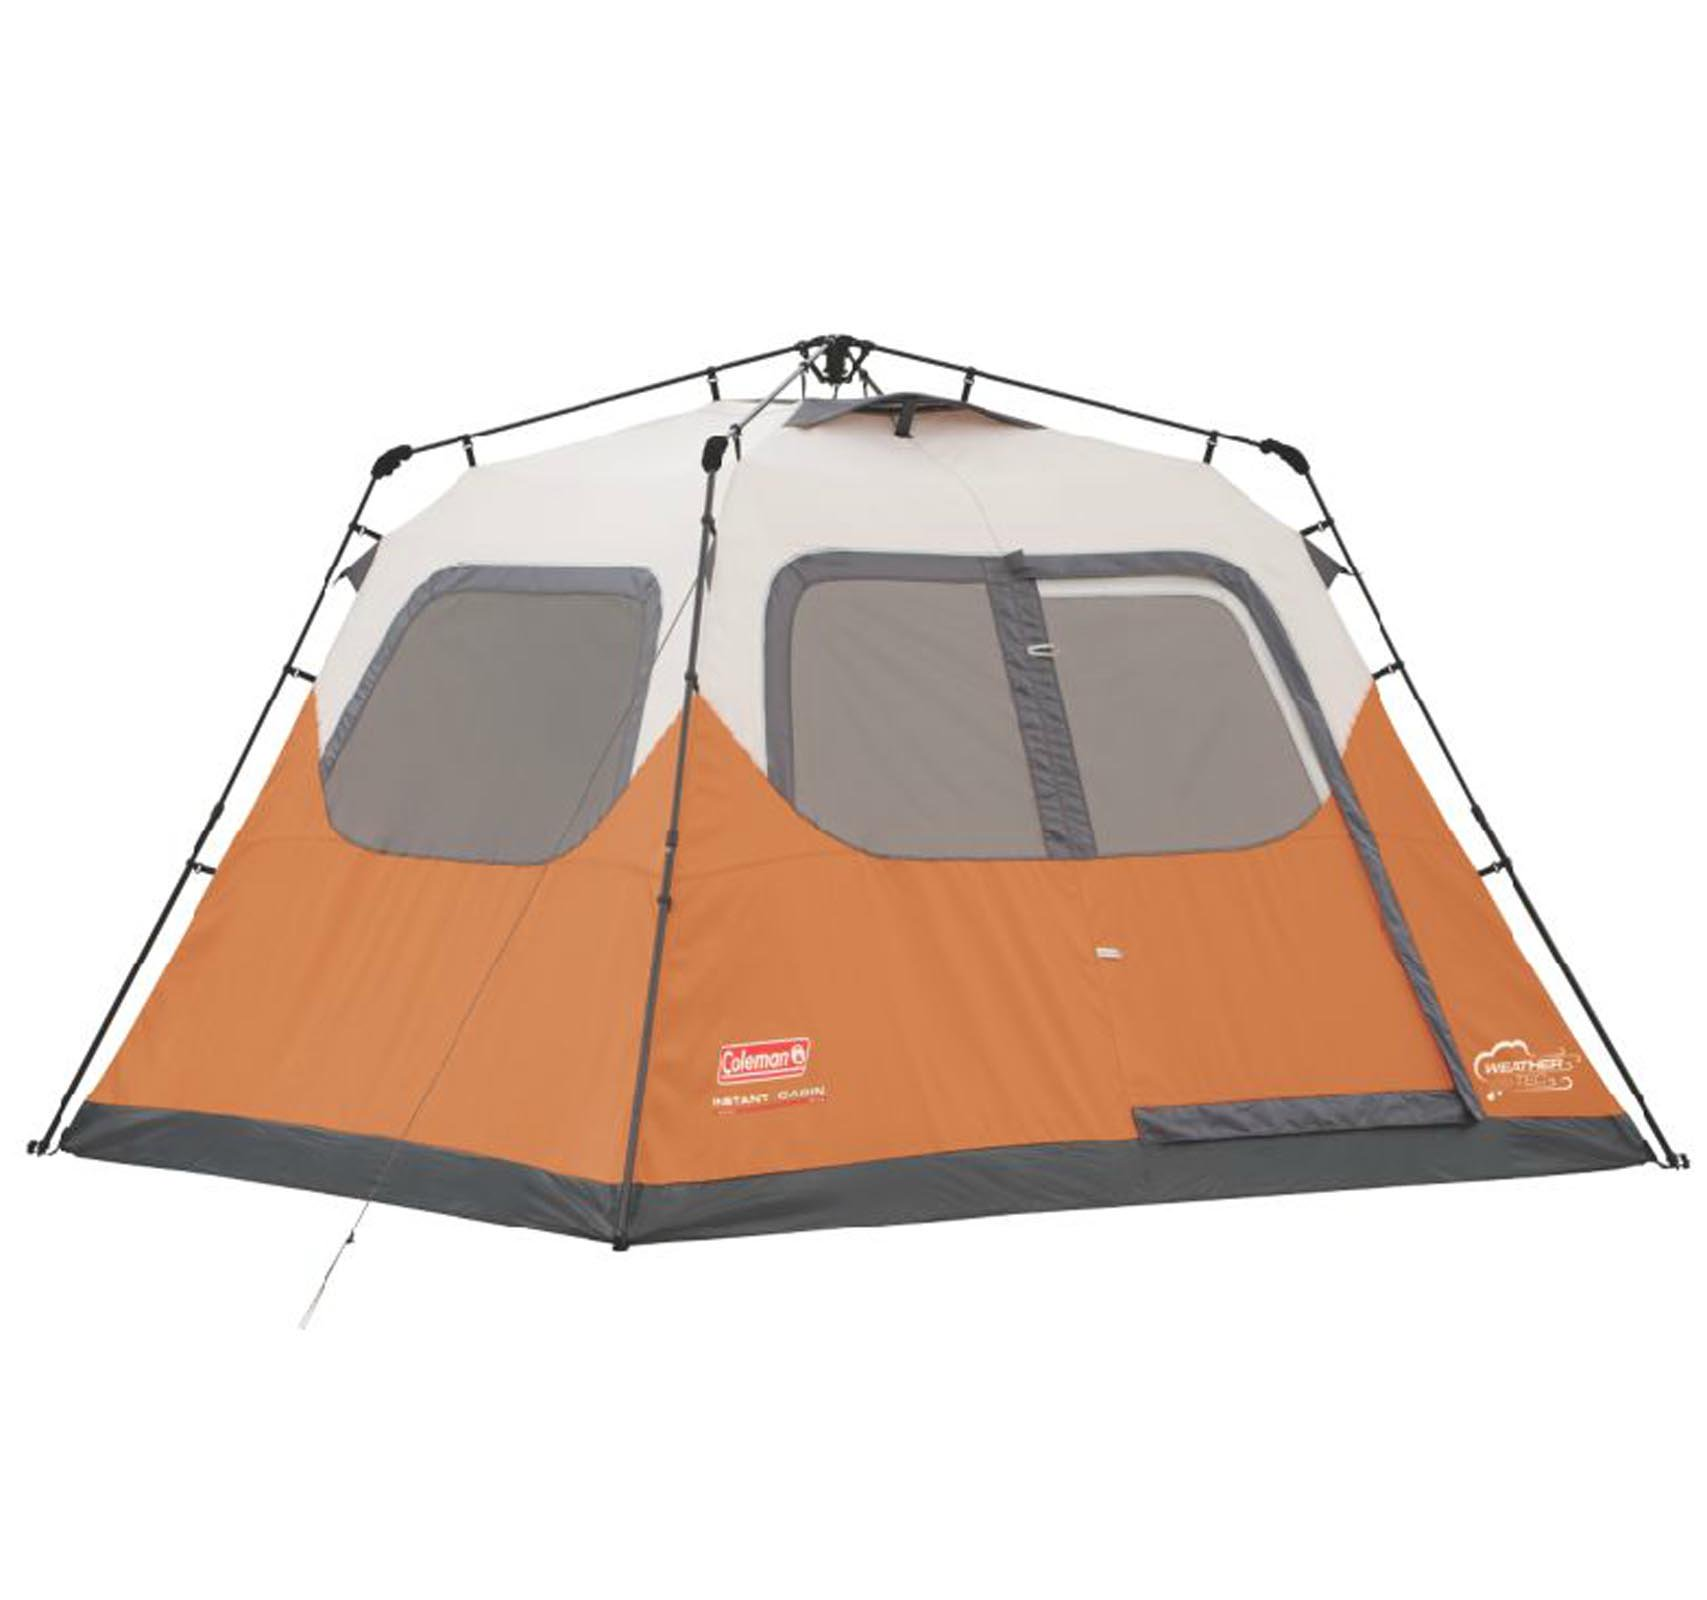 Coleman Outdoor 6 Person 10' x 9' Easy Set Up Family Camping Instant Pop Up Tent by COLEMAN